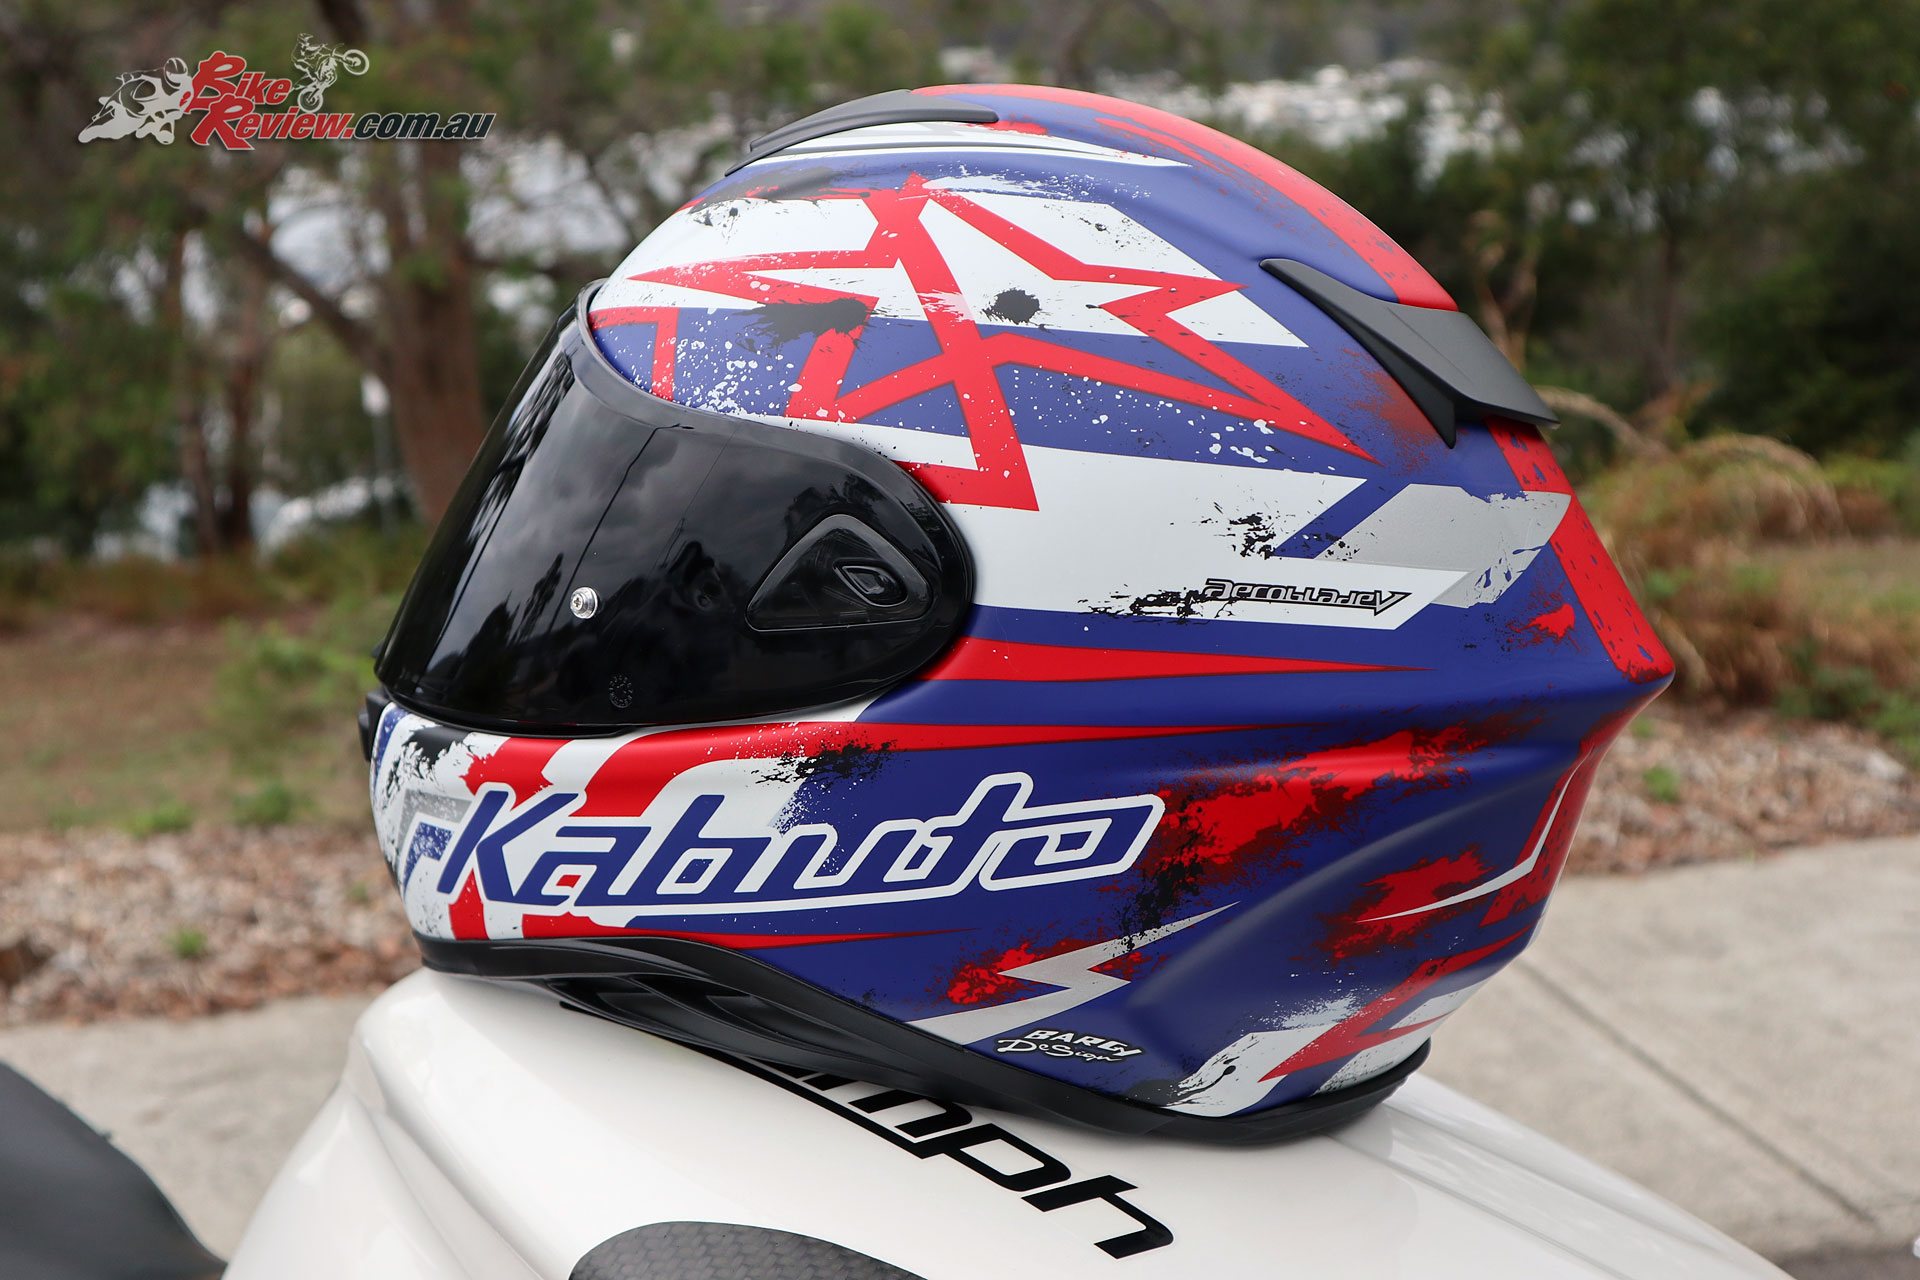 The Aeroblade-5 is the latest offering from Kabuto offering a sport helmet at an exceptionally competitive buy in